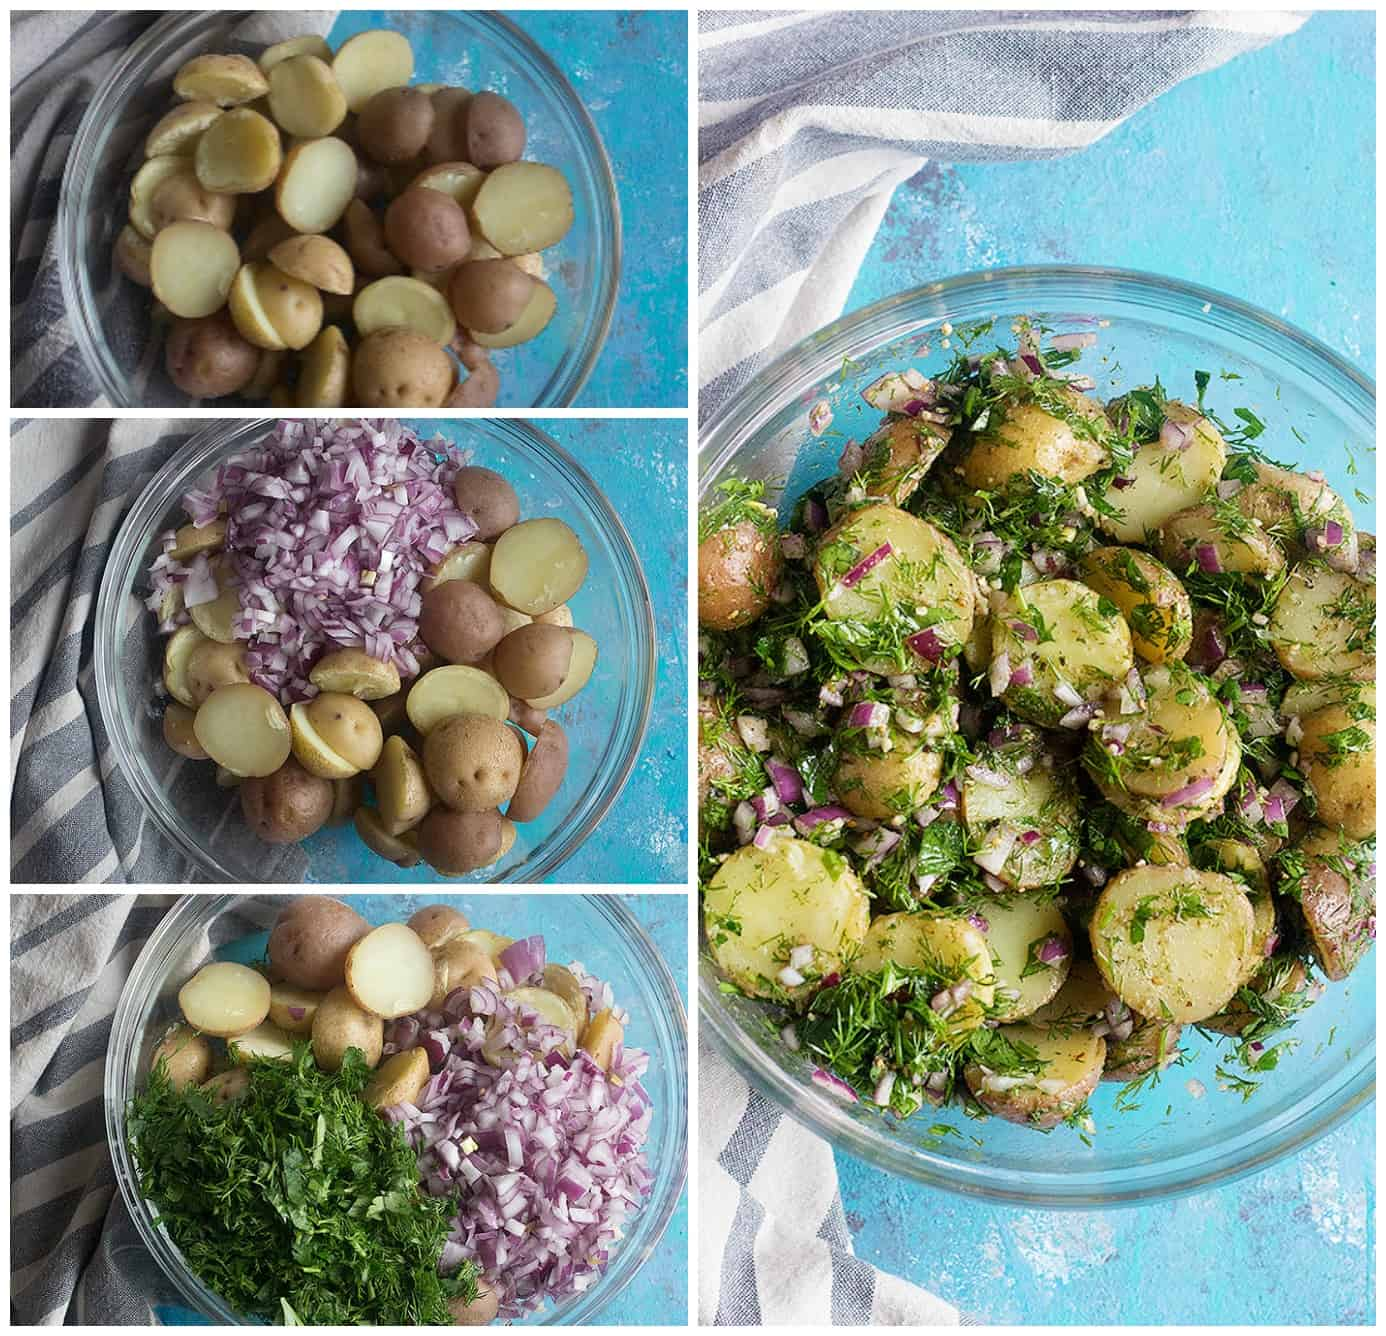 boil the potatoes, add chopped onion, parsley and dill then mix with the dressing.